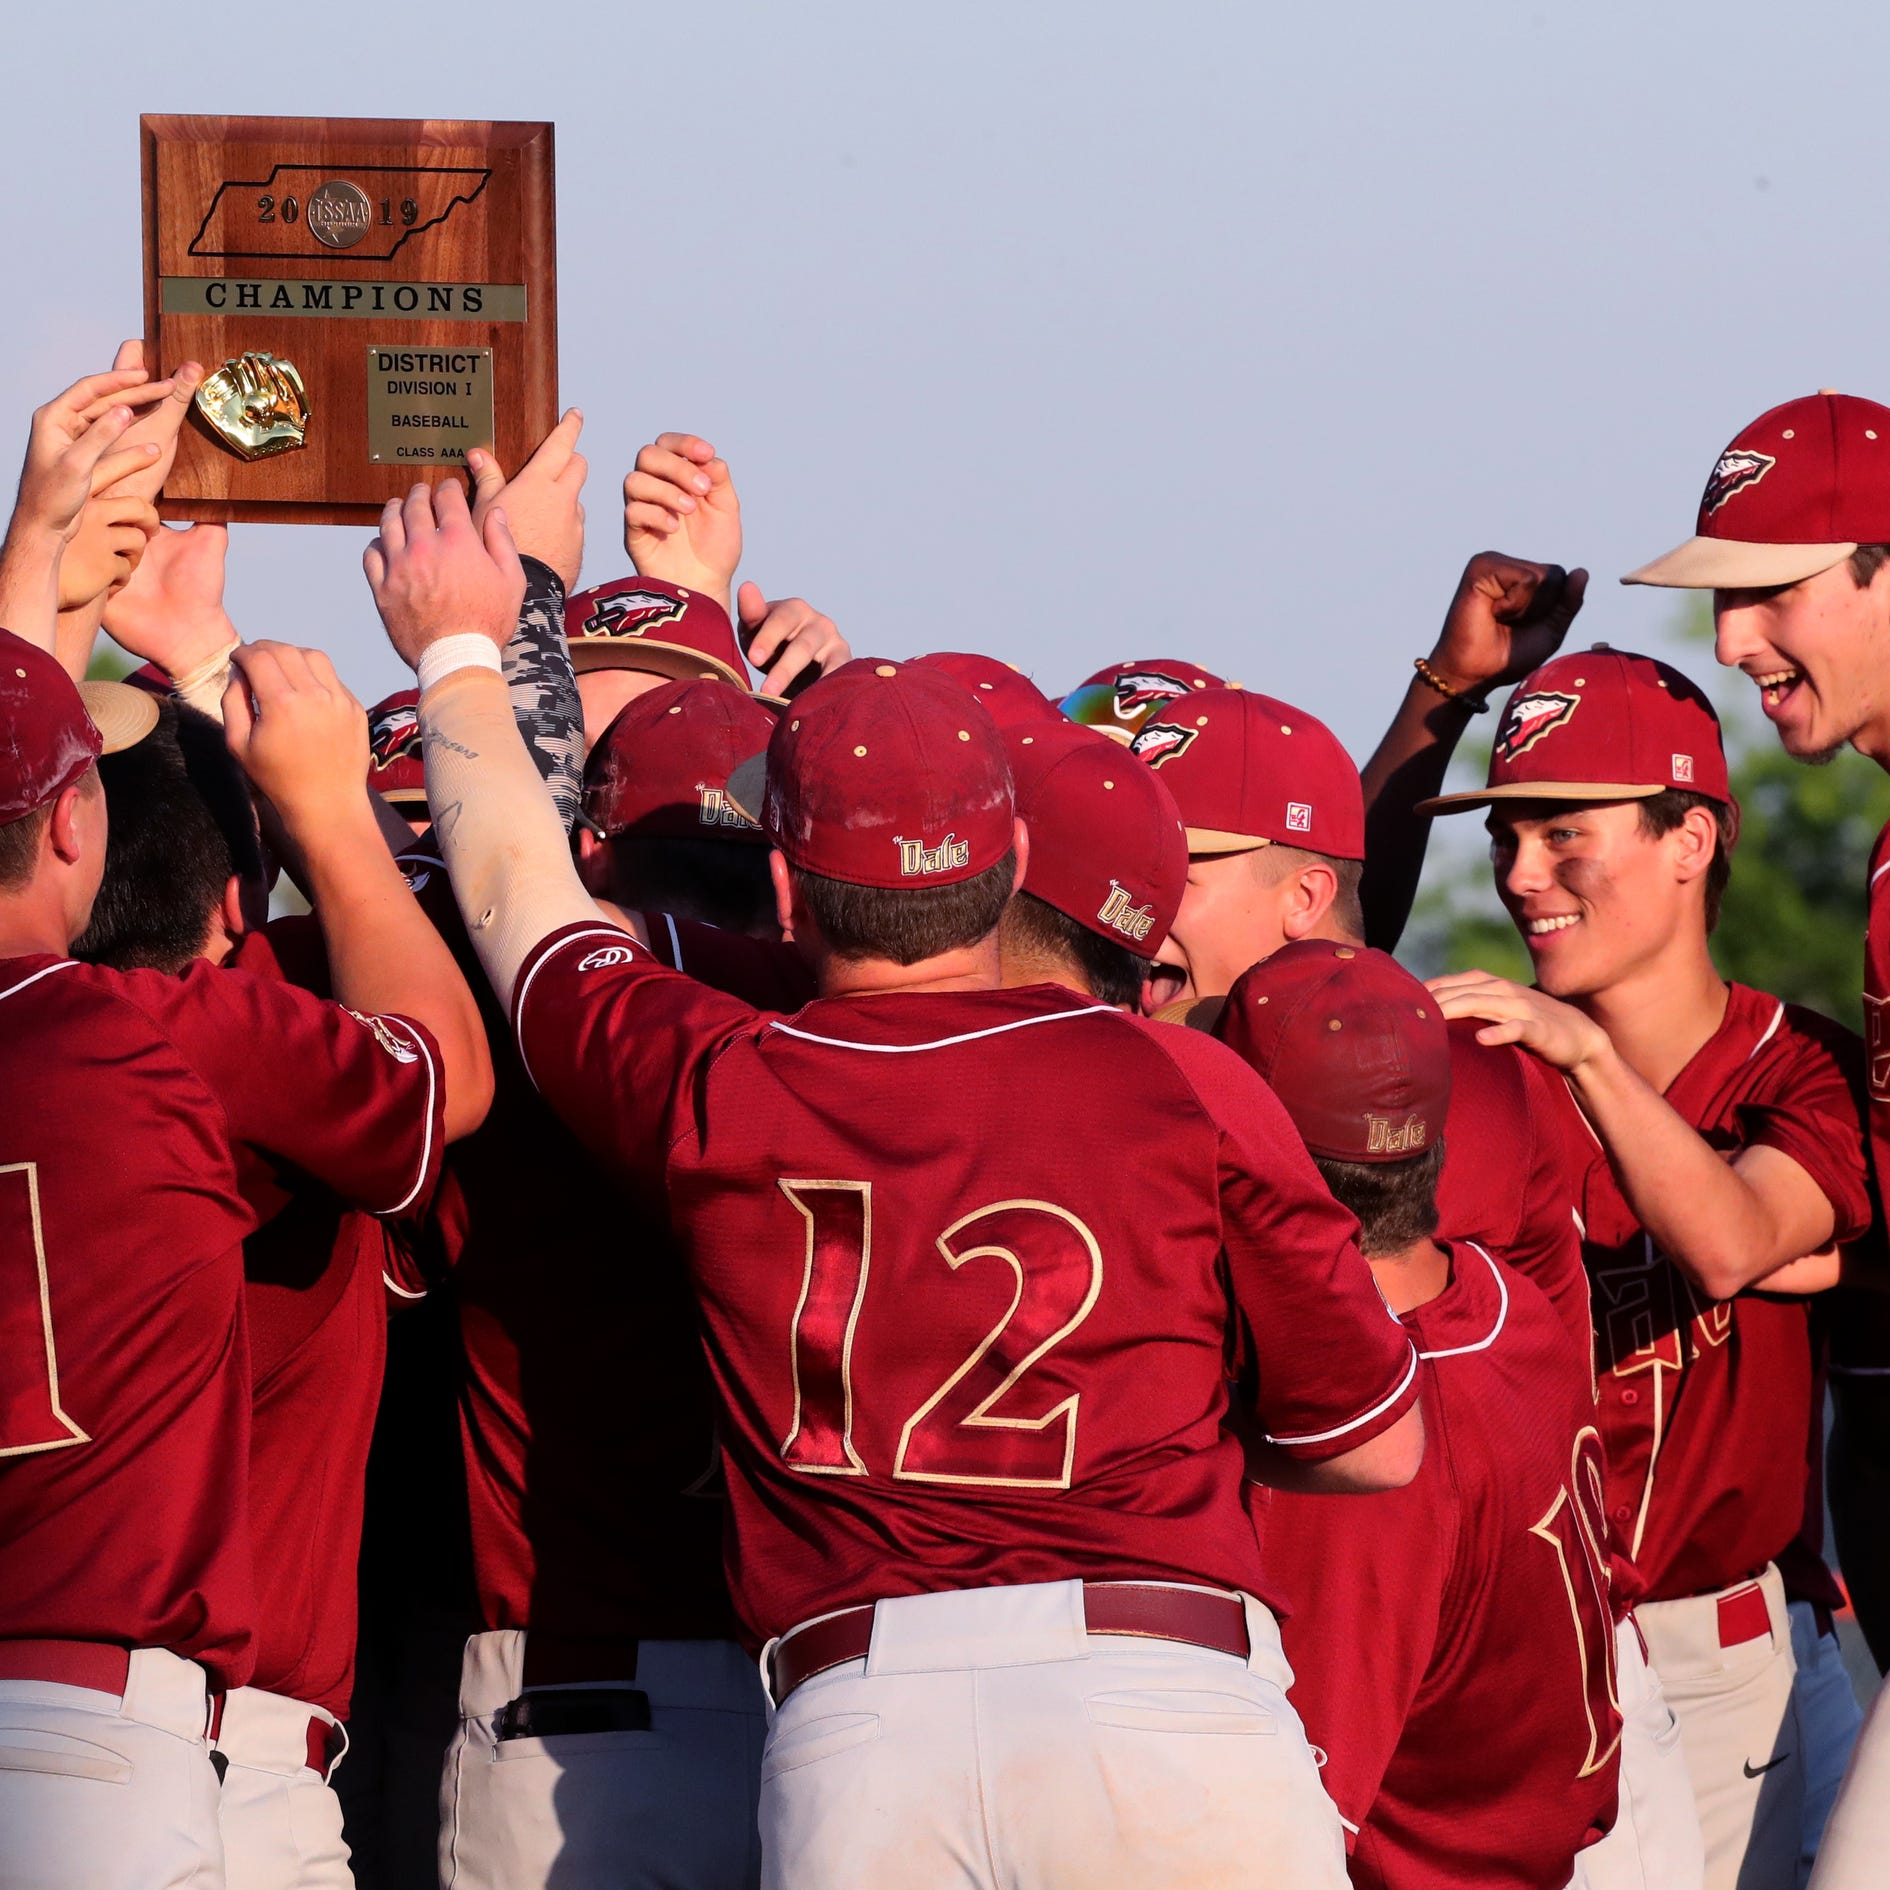 Sectional trip is three years in the making for Riverdale baseball